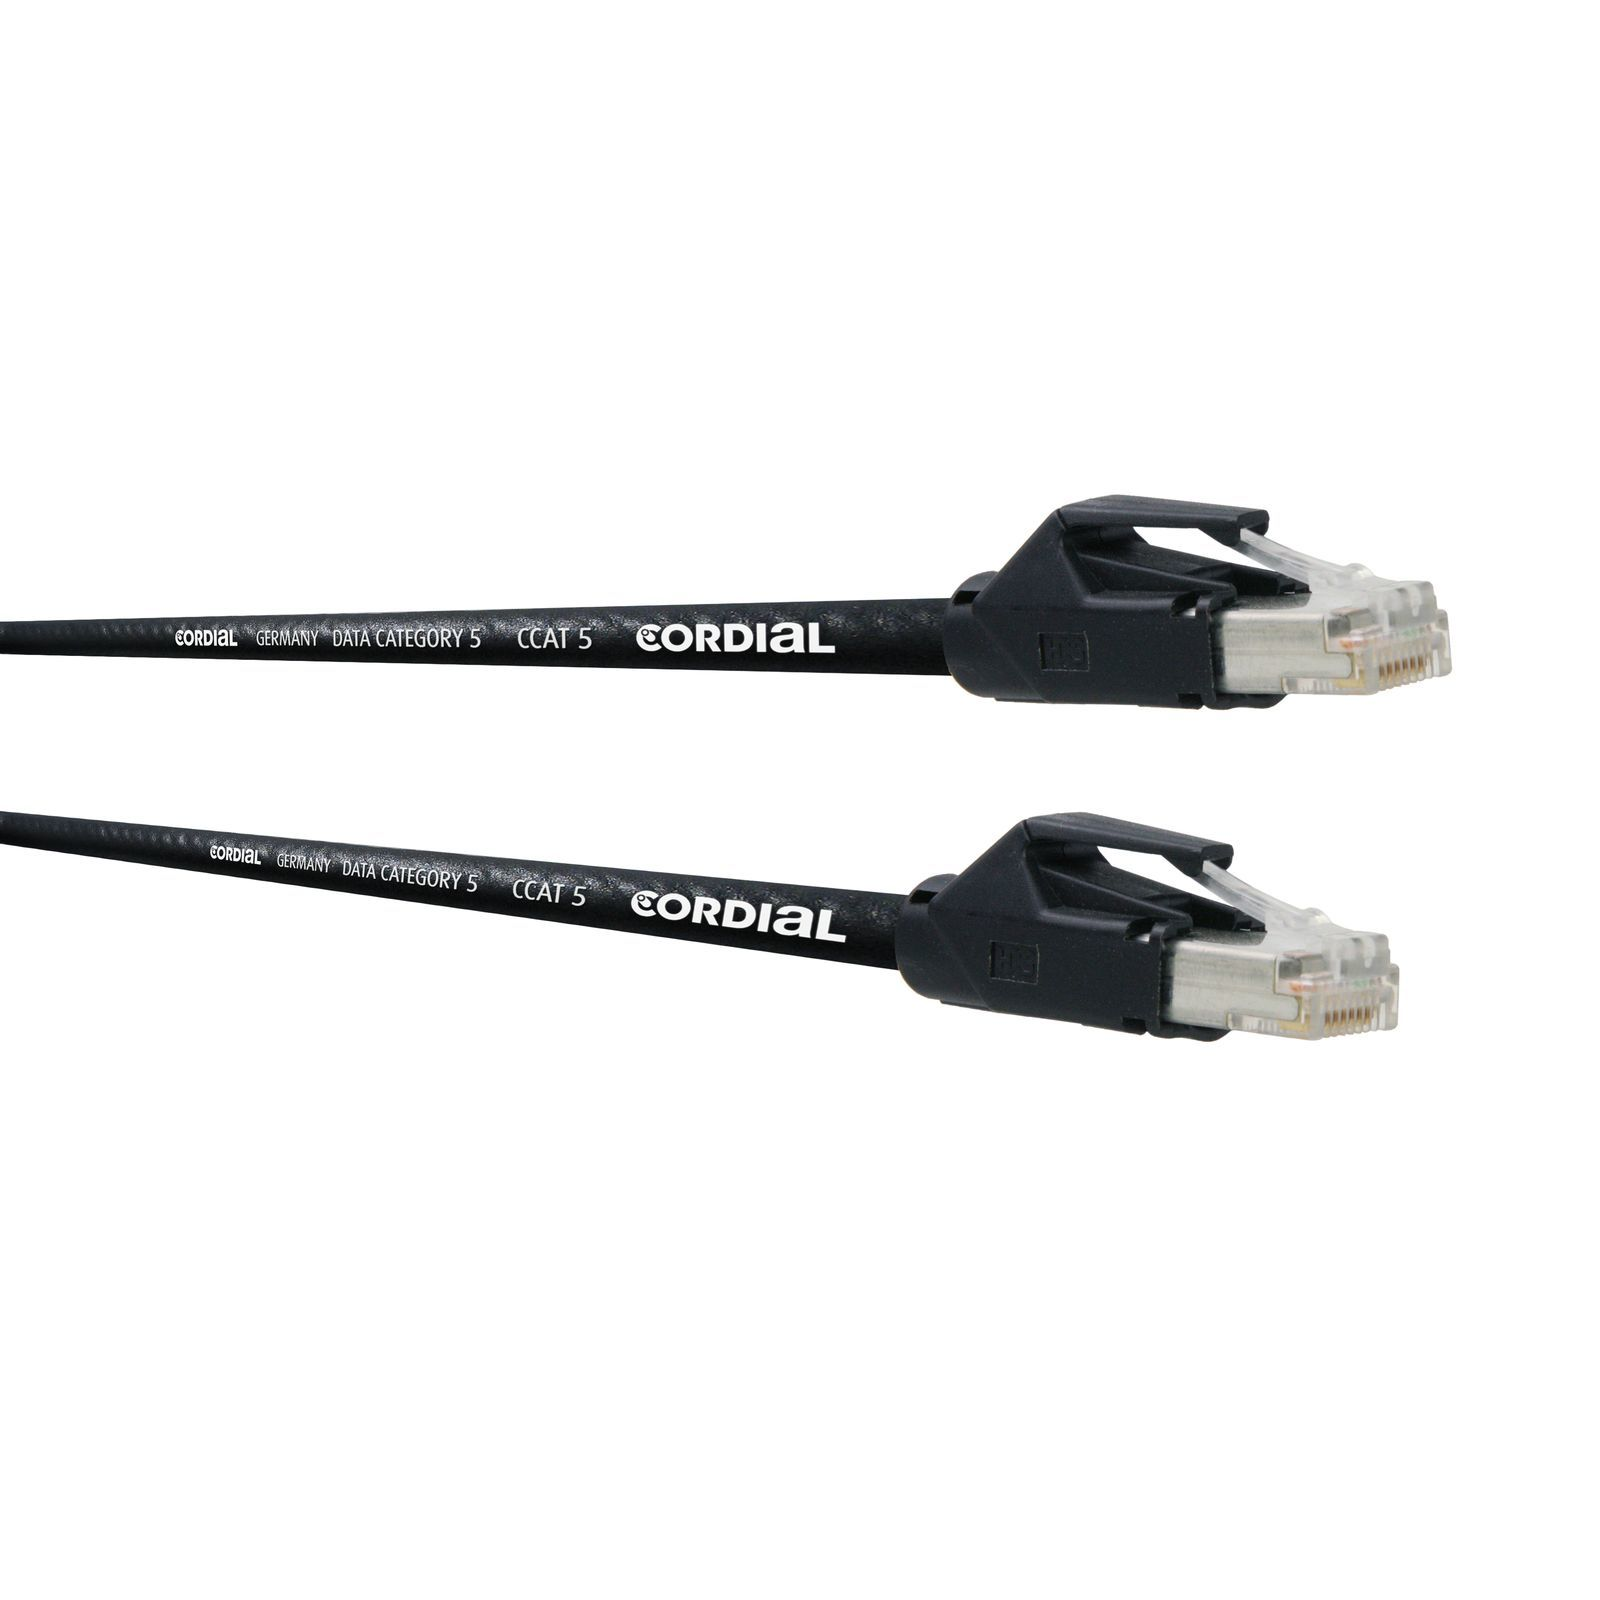 Cordial CSE HH 5 CAT 5 Data Cable 10m RJ 45 / RJ 45 Produktbillede